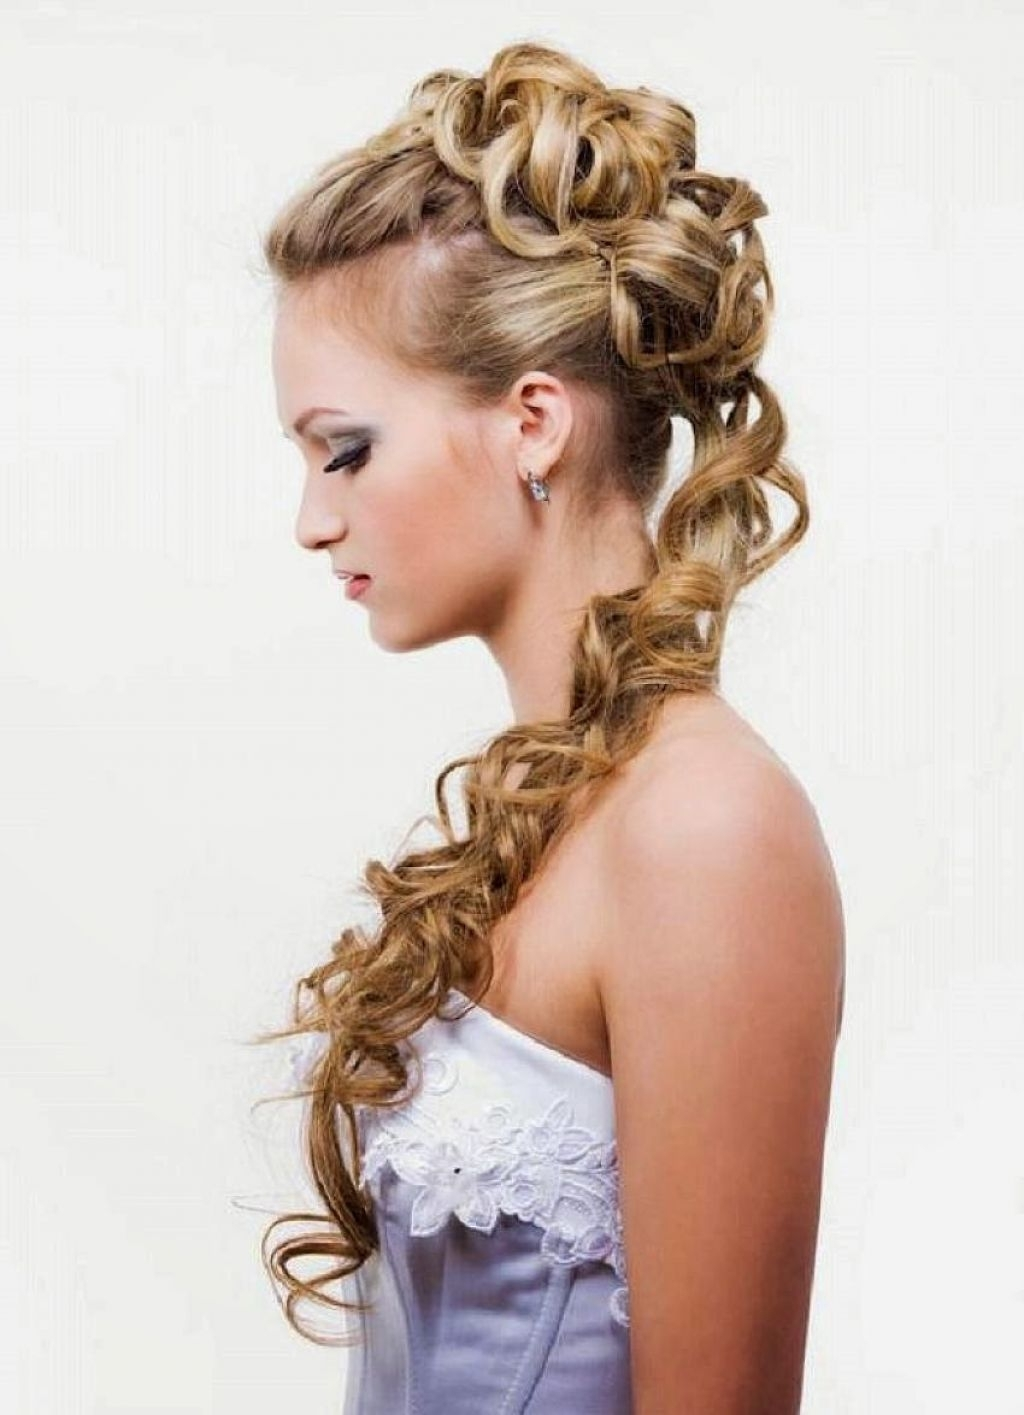 Updo Hairstyles For Long Straight Hair – Hairstyle For Women & Man With Regard To Straight Hair Updo Hairstyles (View 12 of 15)